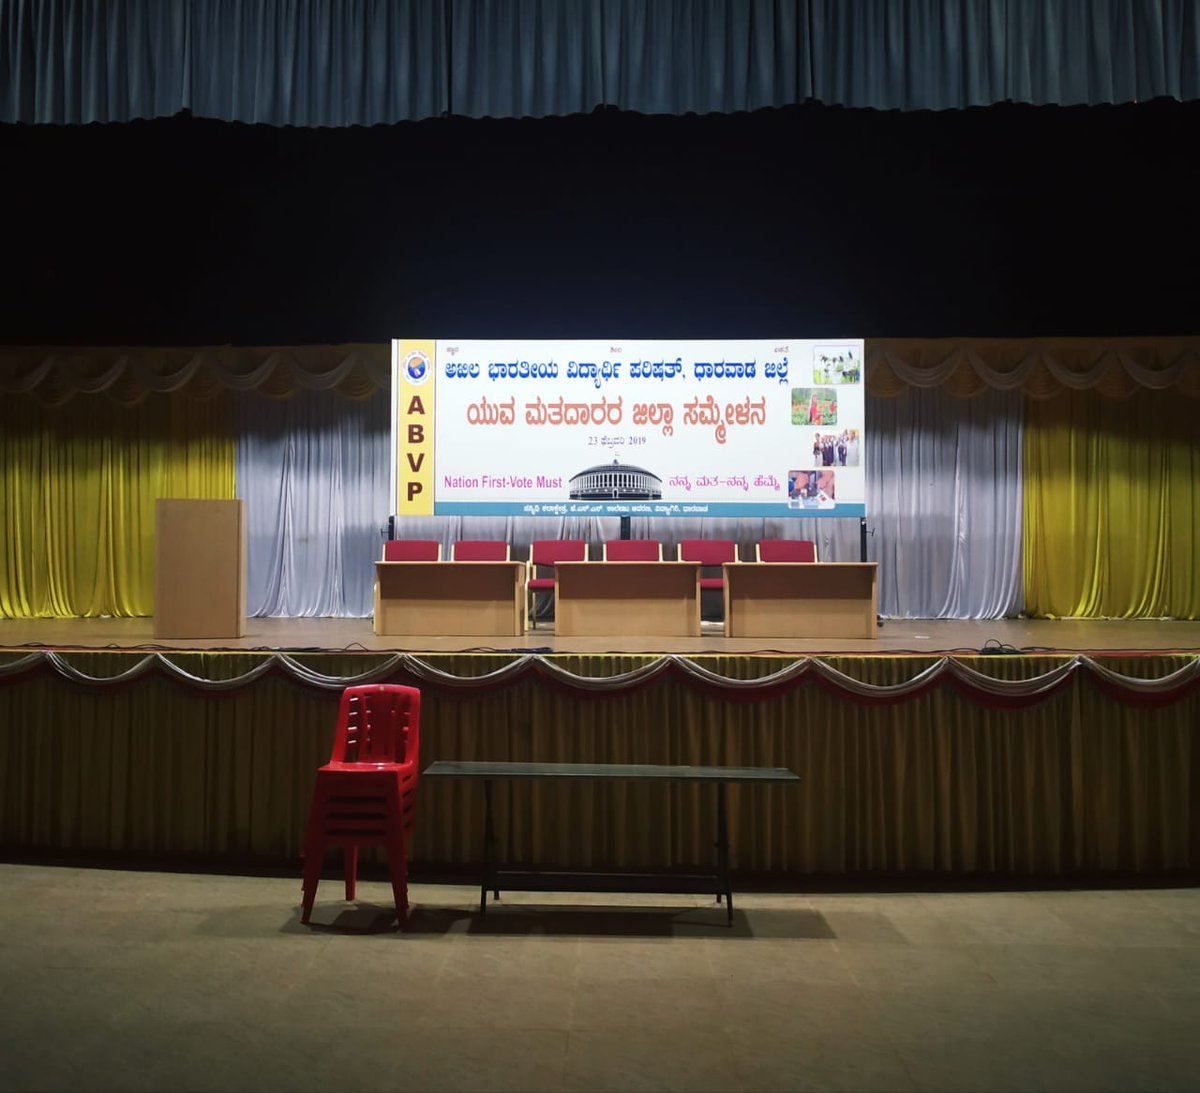 Final preparation for #YoungVotersConference at JSS College, Dharwad #ABVP #BeAVoter <br>http://pic.twitter.com/IG2JIafSCI